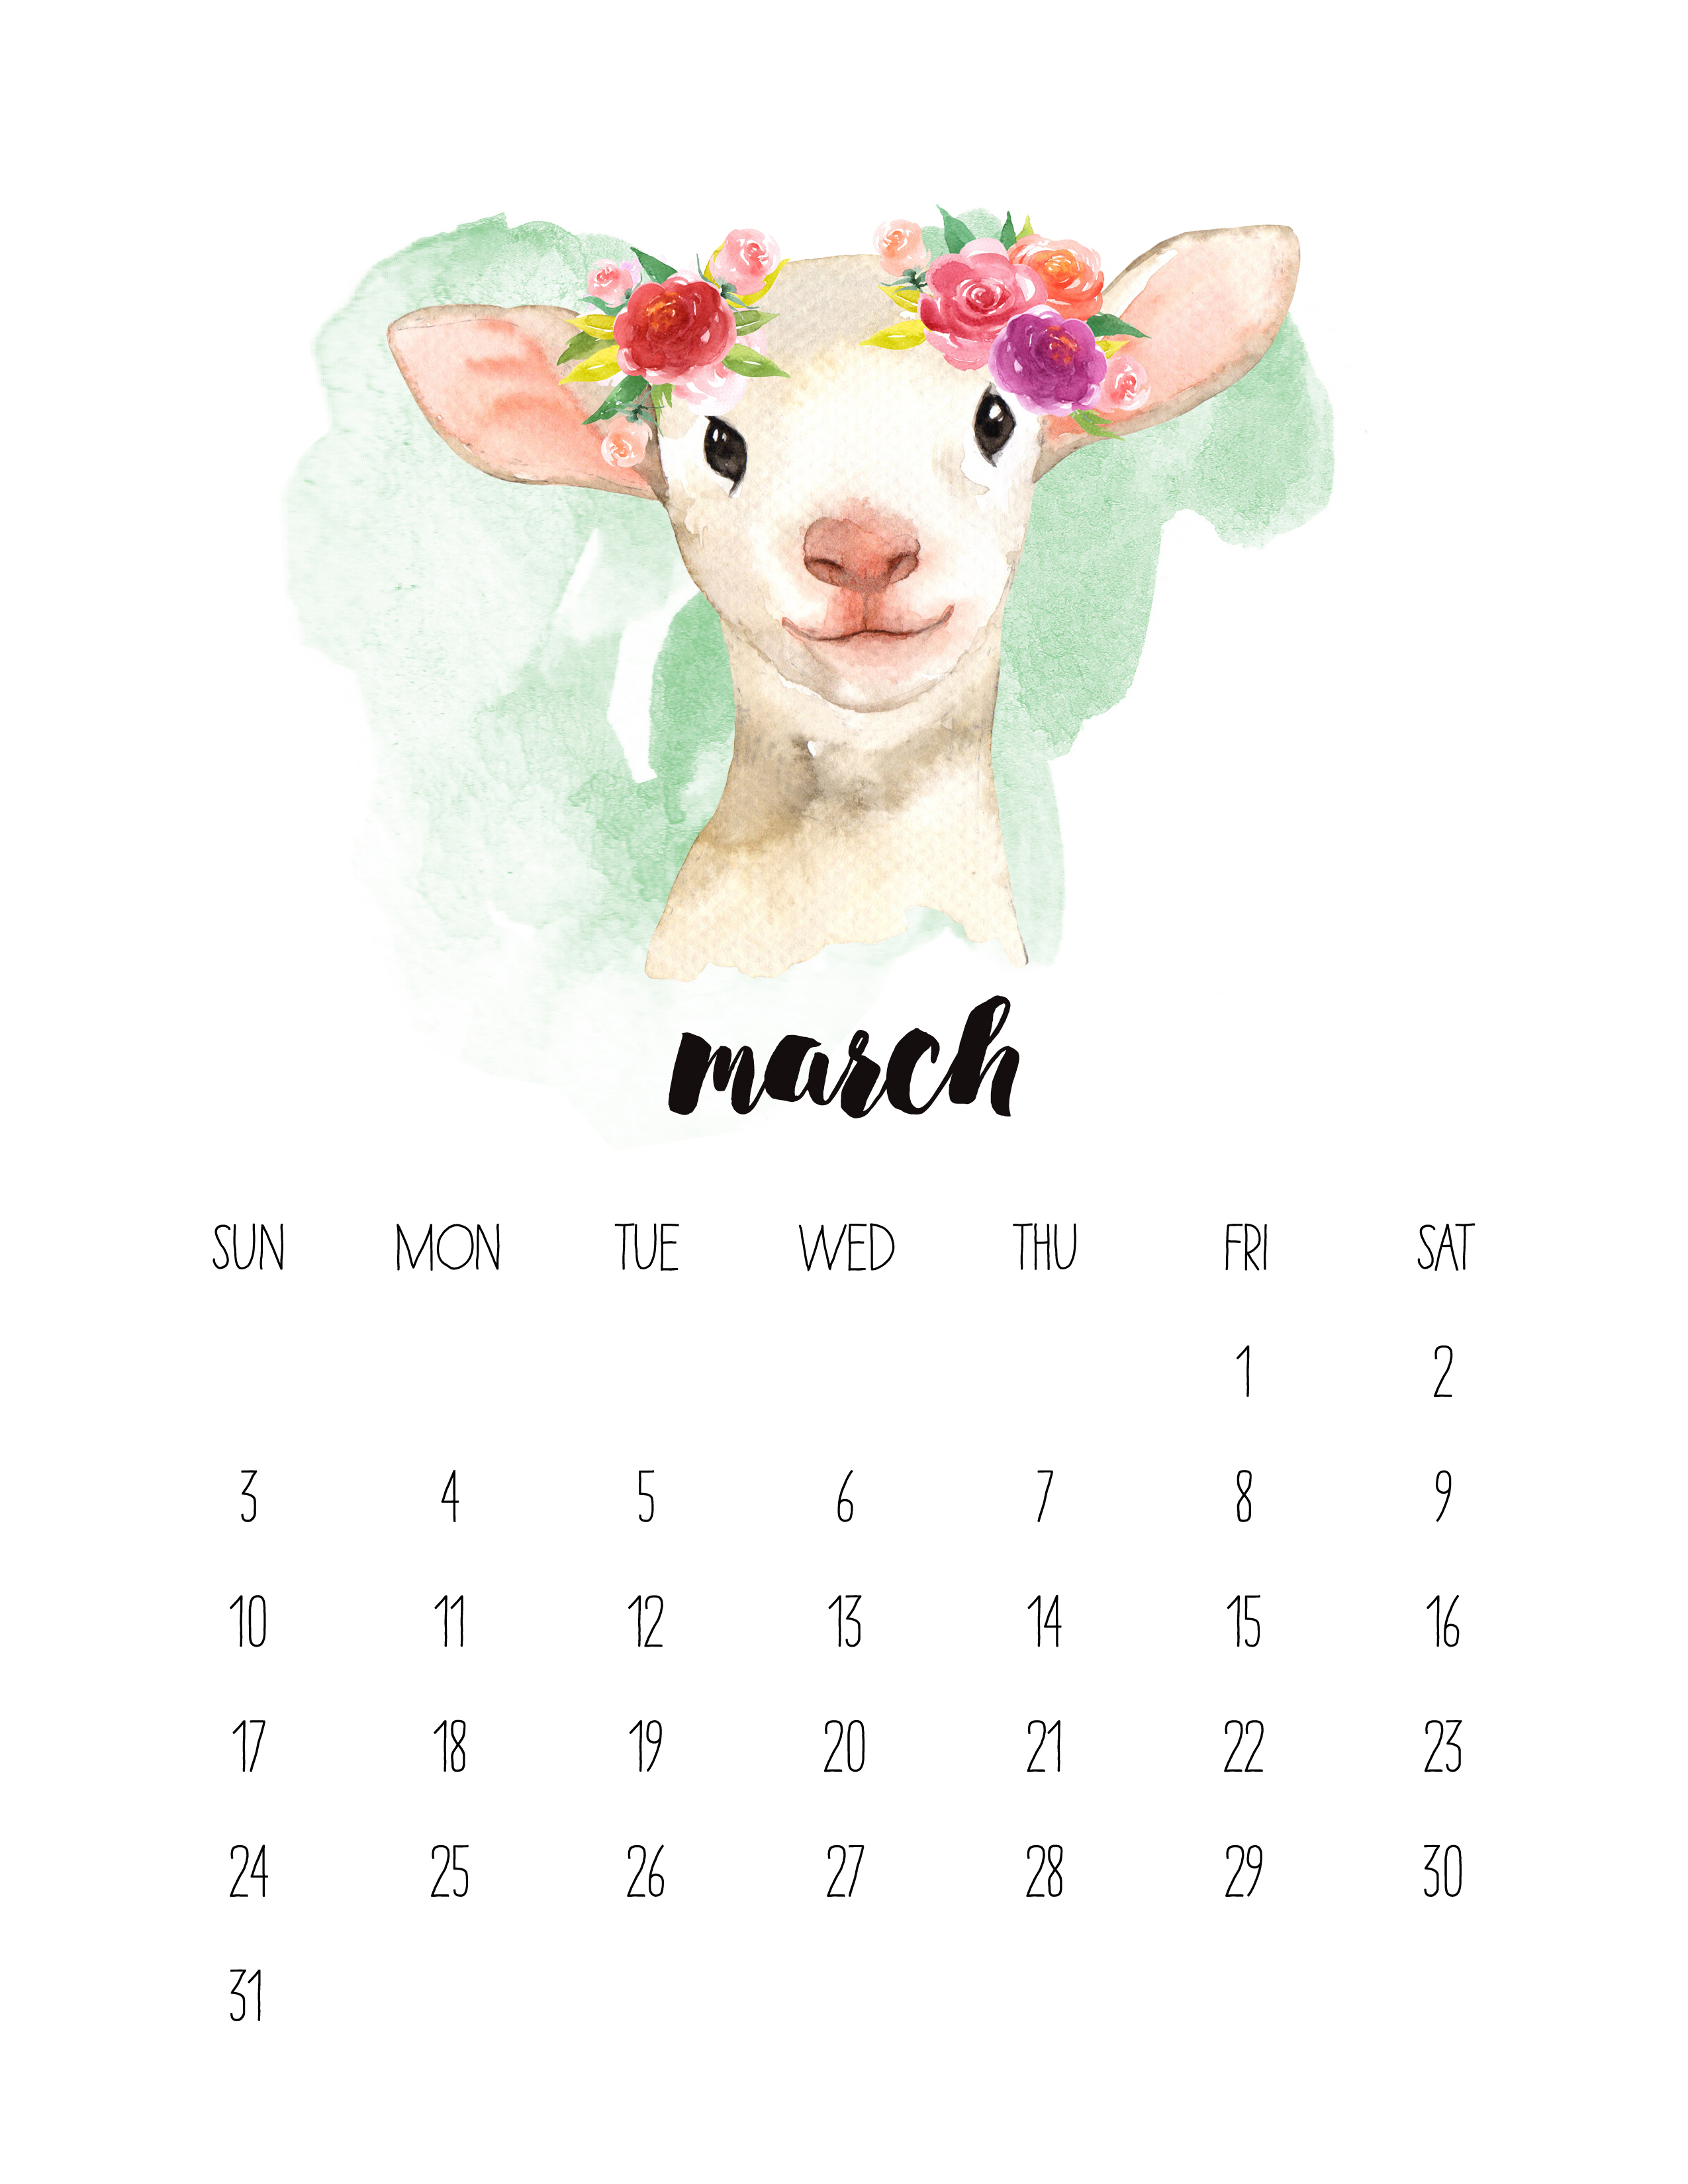 Free Printable 2019 Watercolor Animal Calendar - The Cottage Market